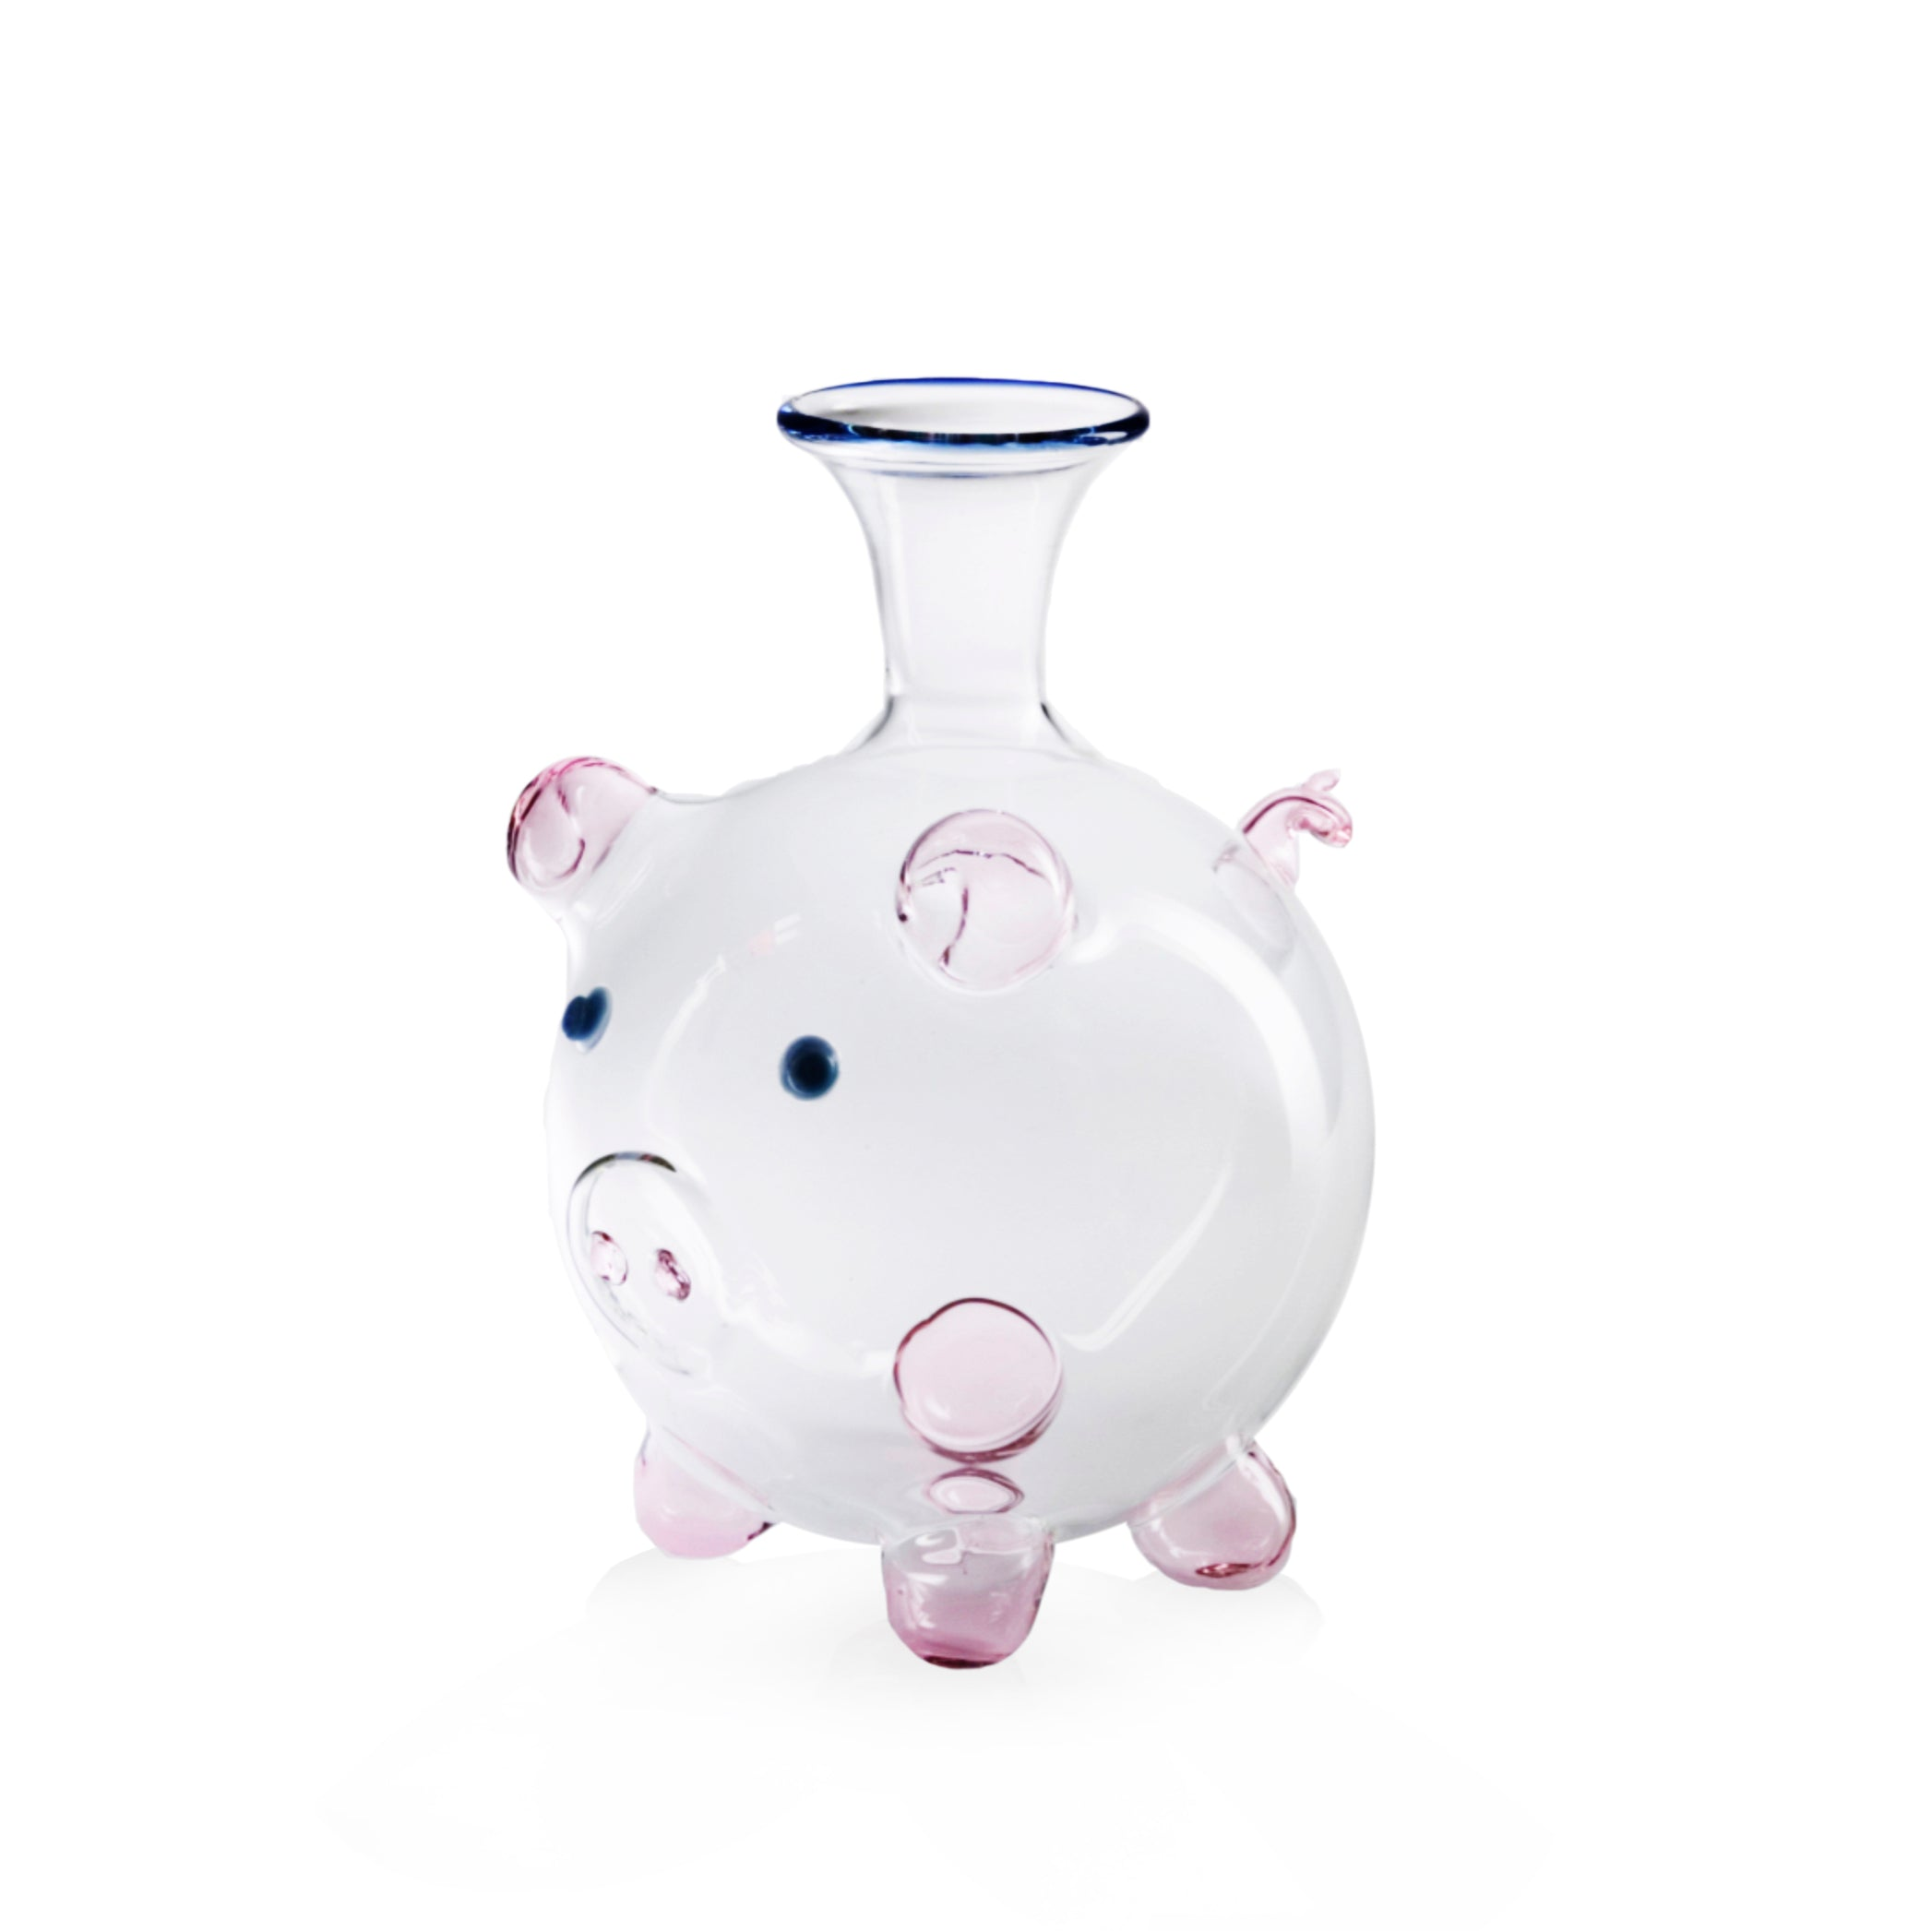 MADE TO ORDER - Handblown Glass Pig Decanter